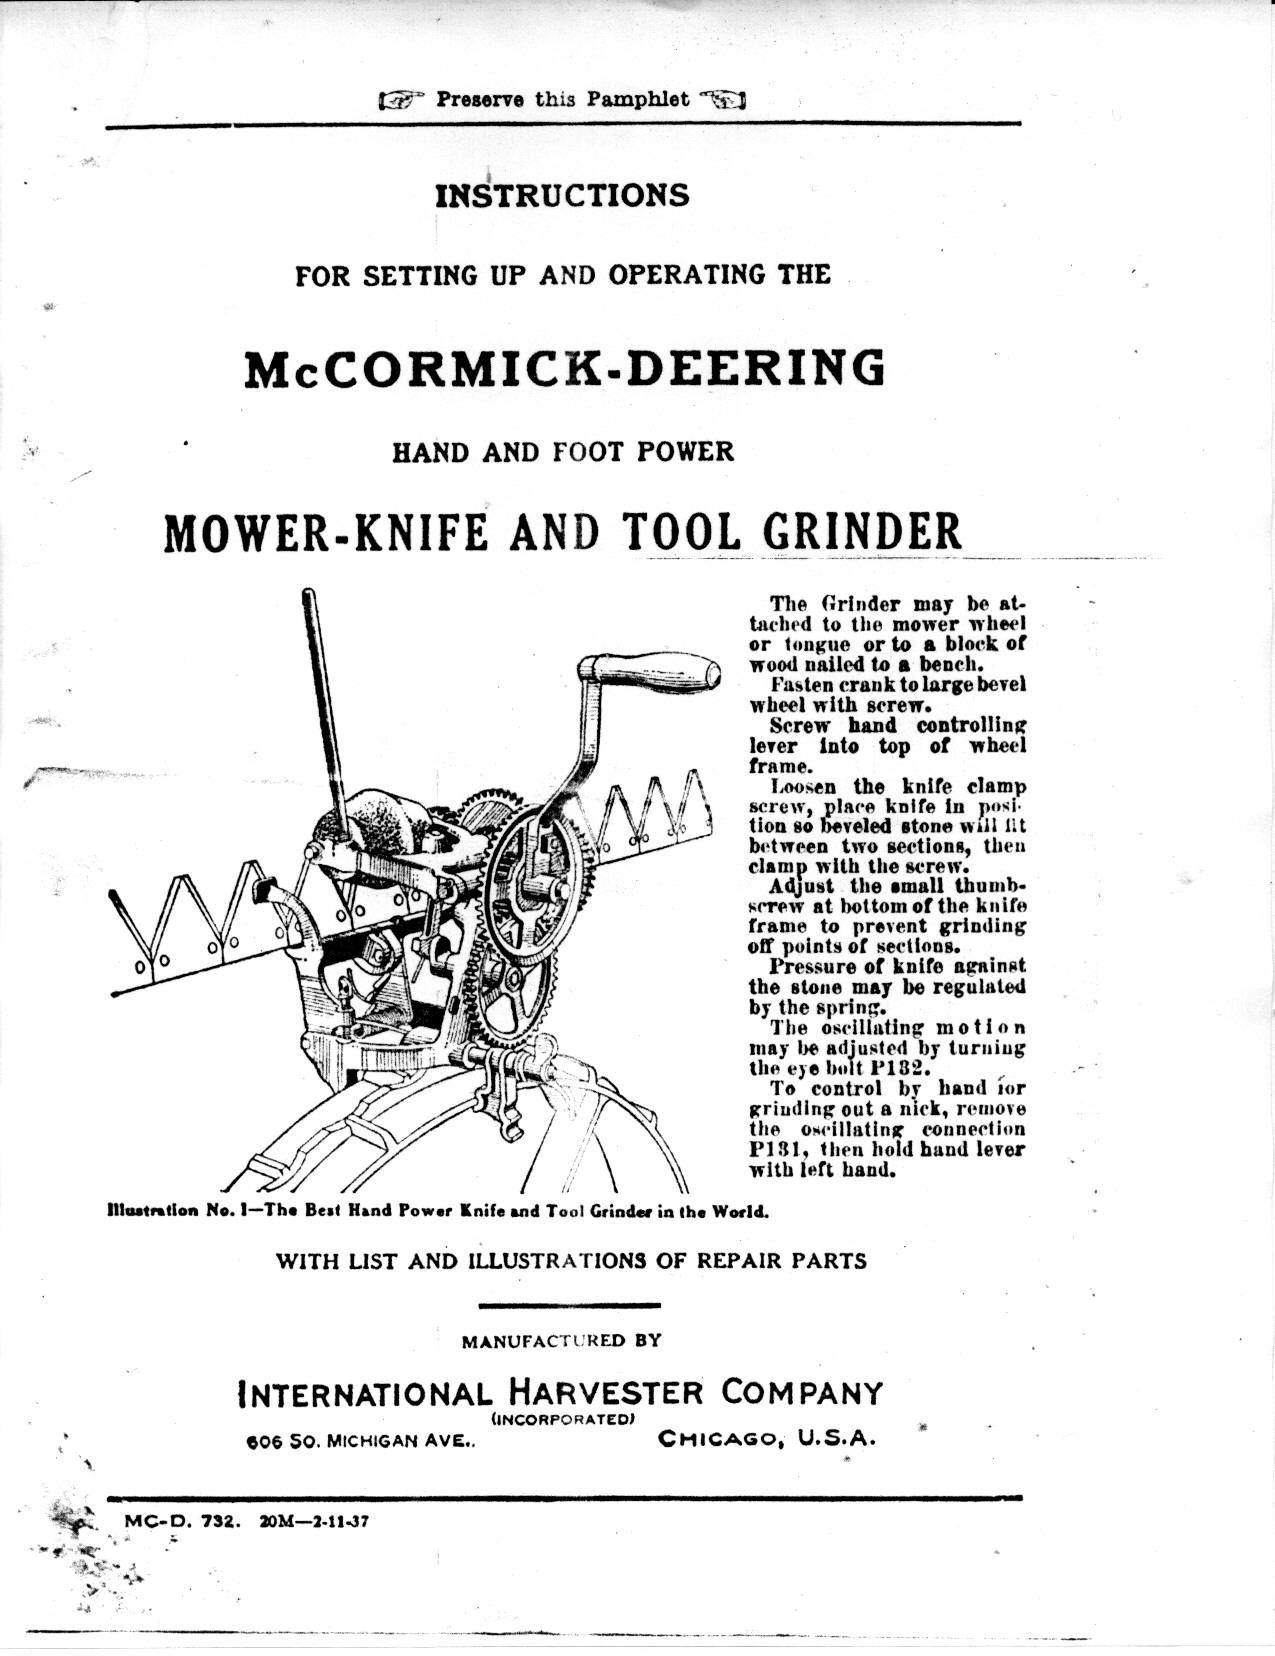 McCormick-Deering Hand and Foot Powered Mower-Knife and